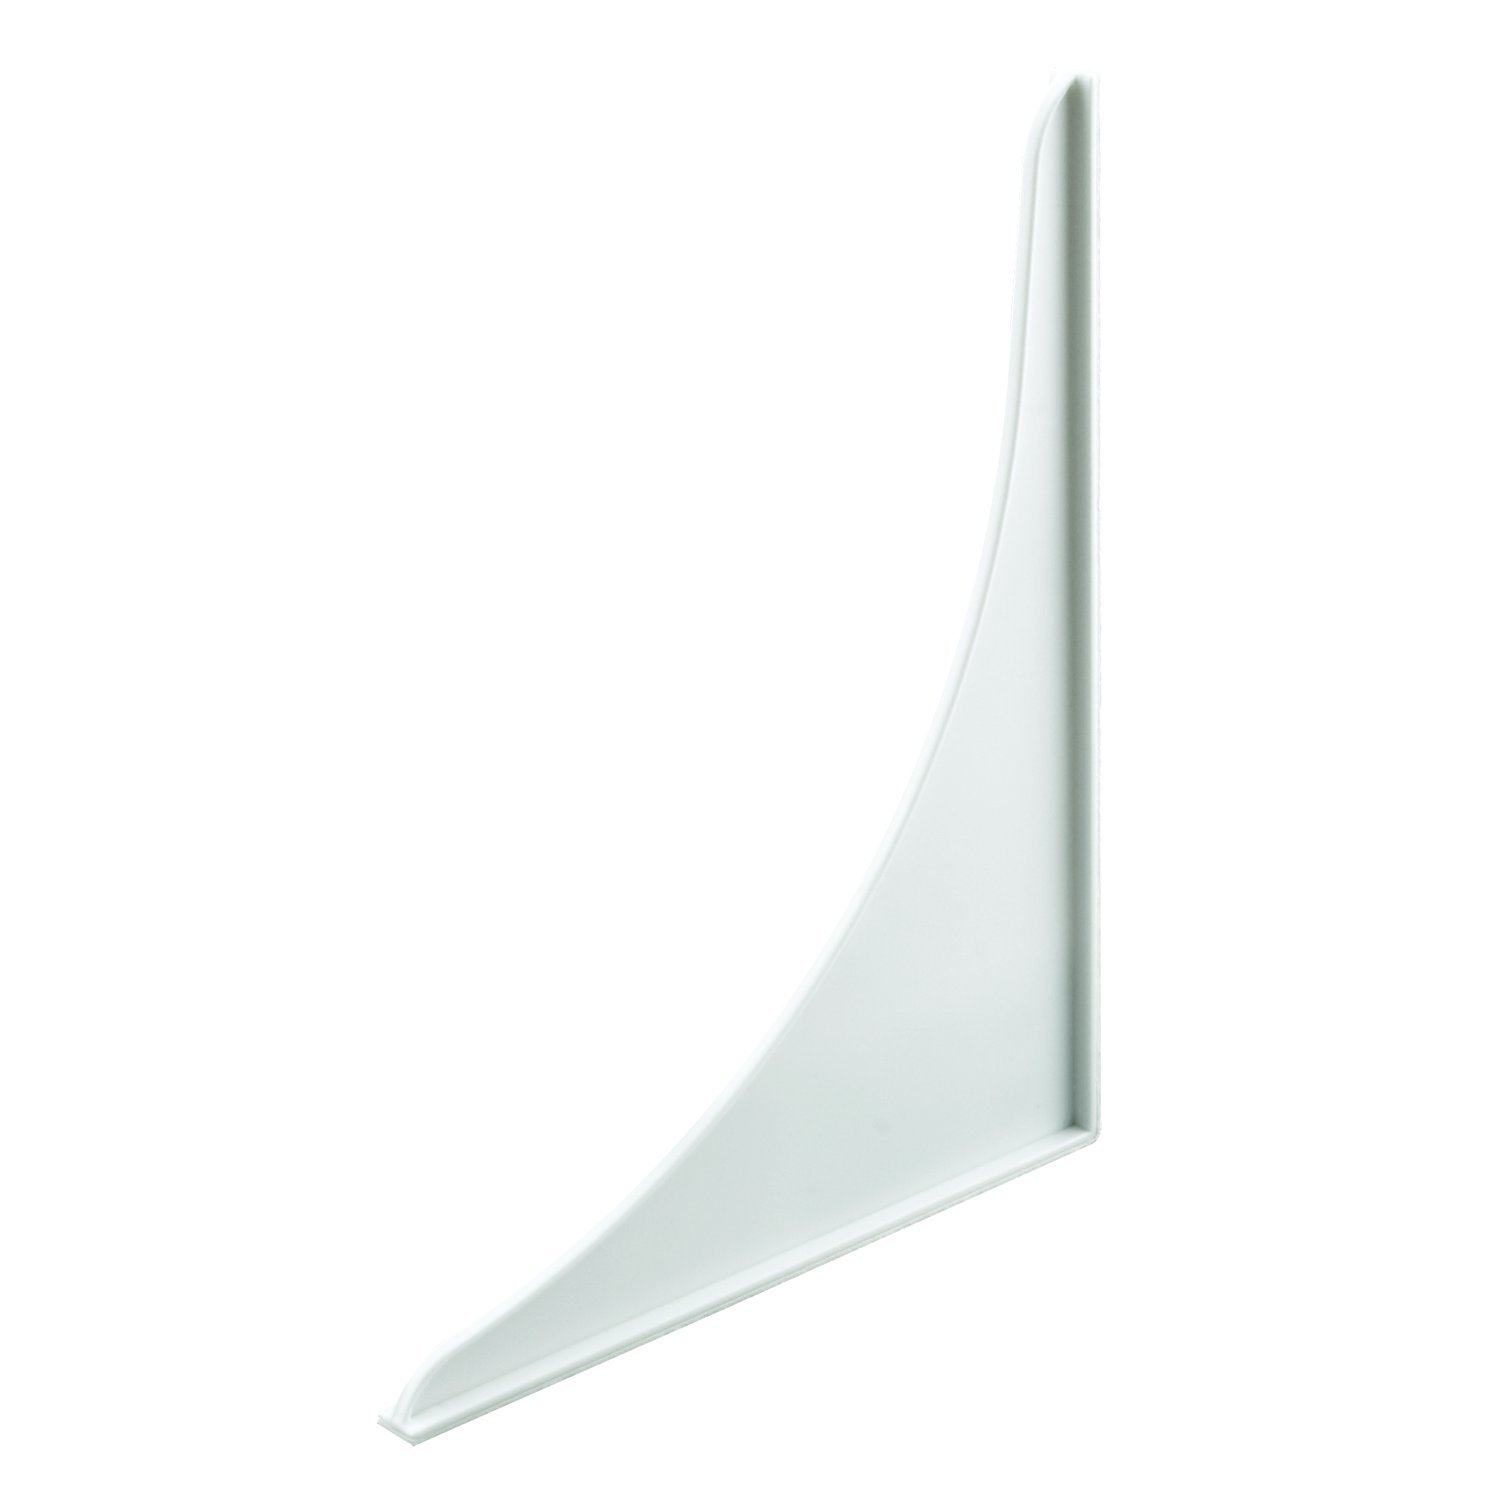 Prime-Line MP6085 Splash Guard, 9 X 7-Inch, White, Pack of 2, 2 Piece by PRIME-LINE